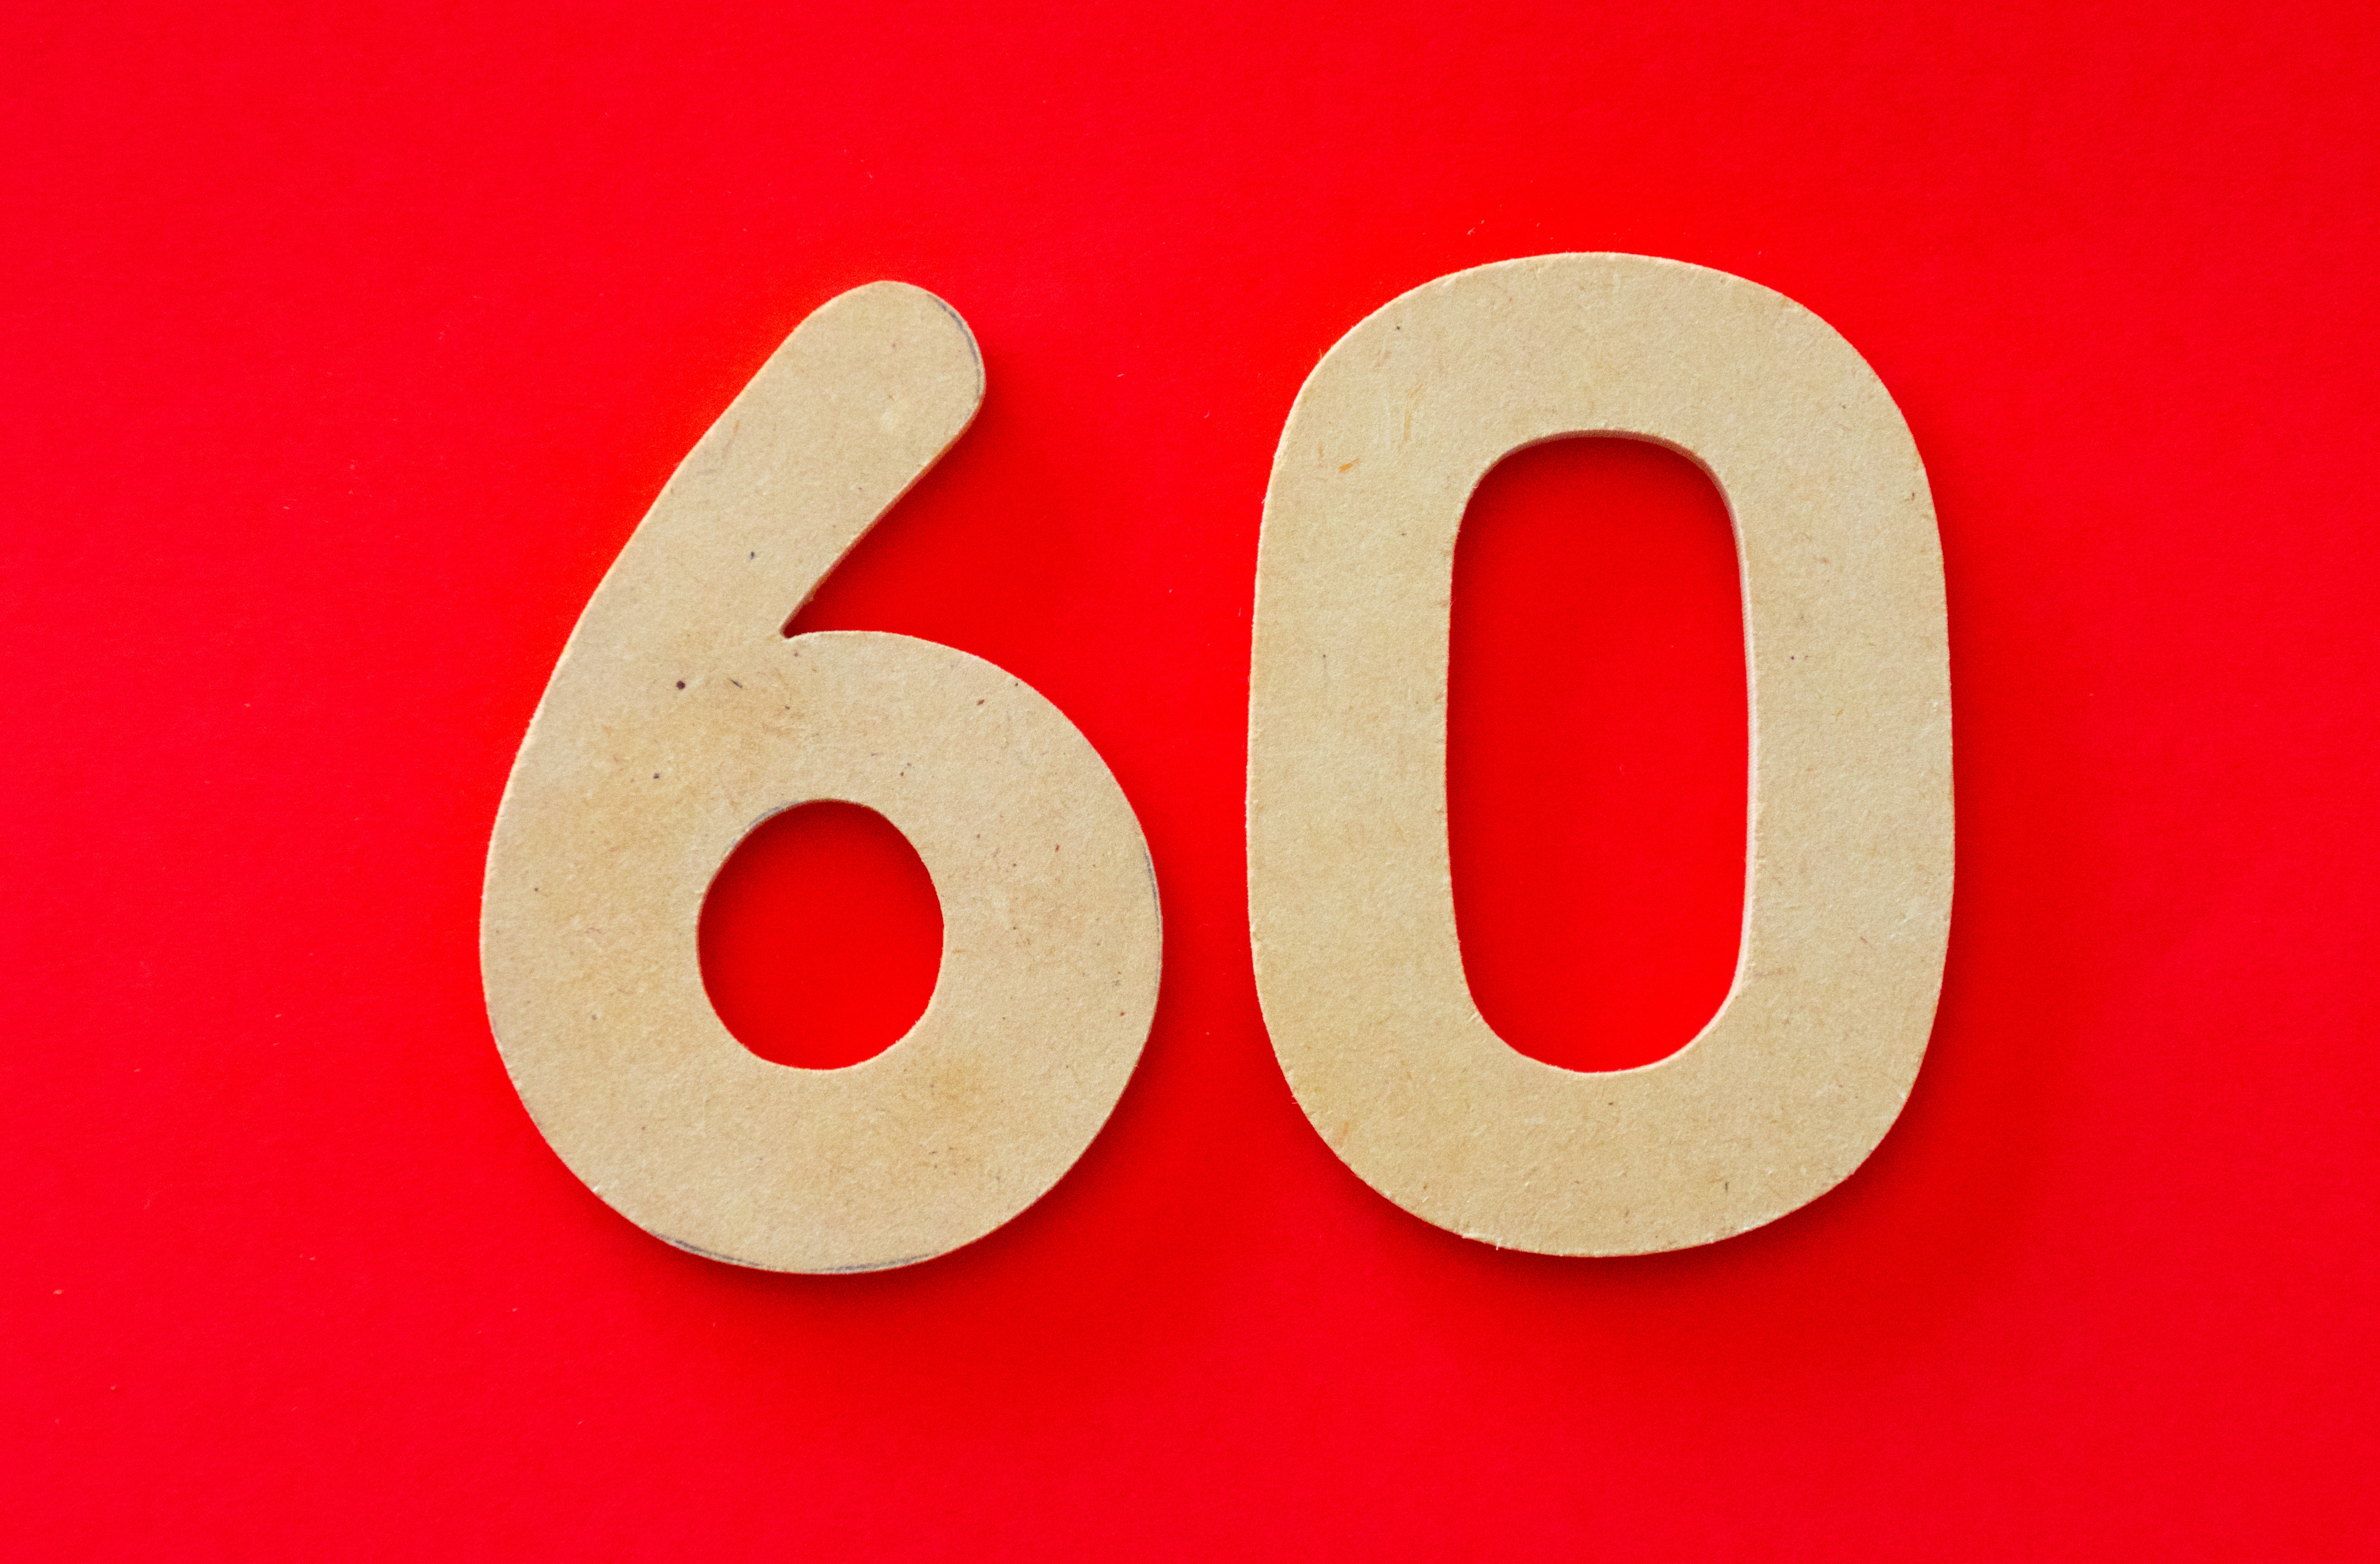 60 Number · Free Stock Photo